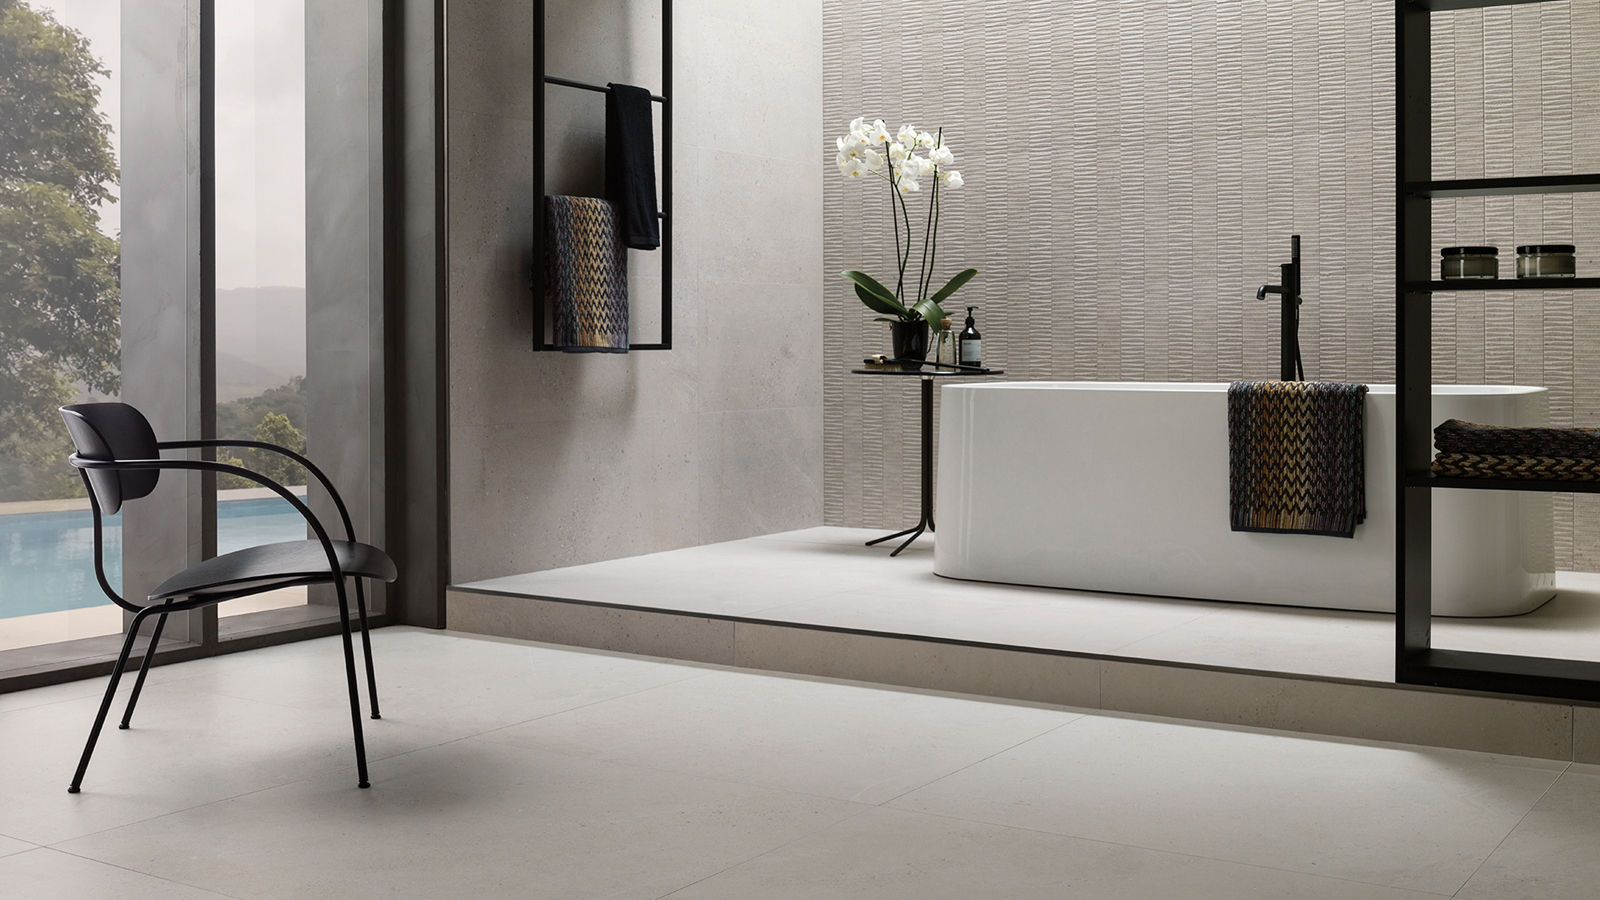 Porcelanosa renews the stone-inspired ceramic classic with Durango